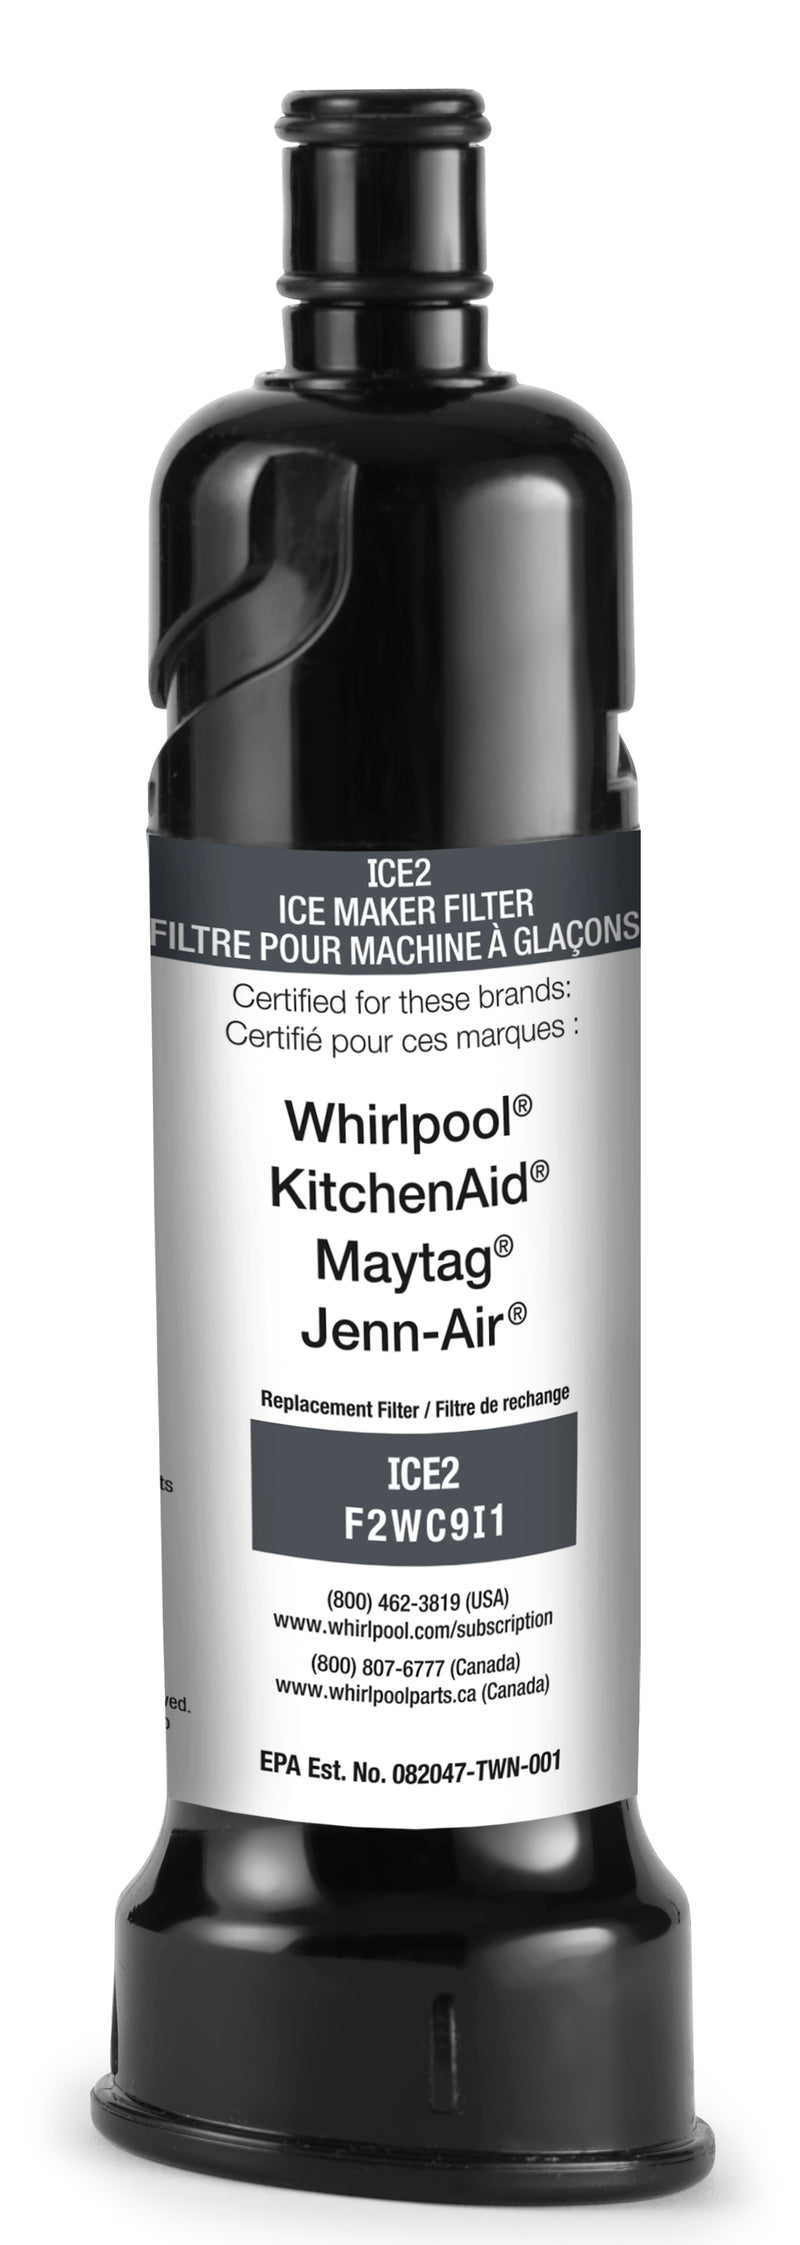 Whirlpool Ice Maker Water Filter - F2WC9I1